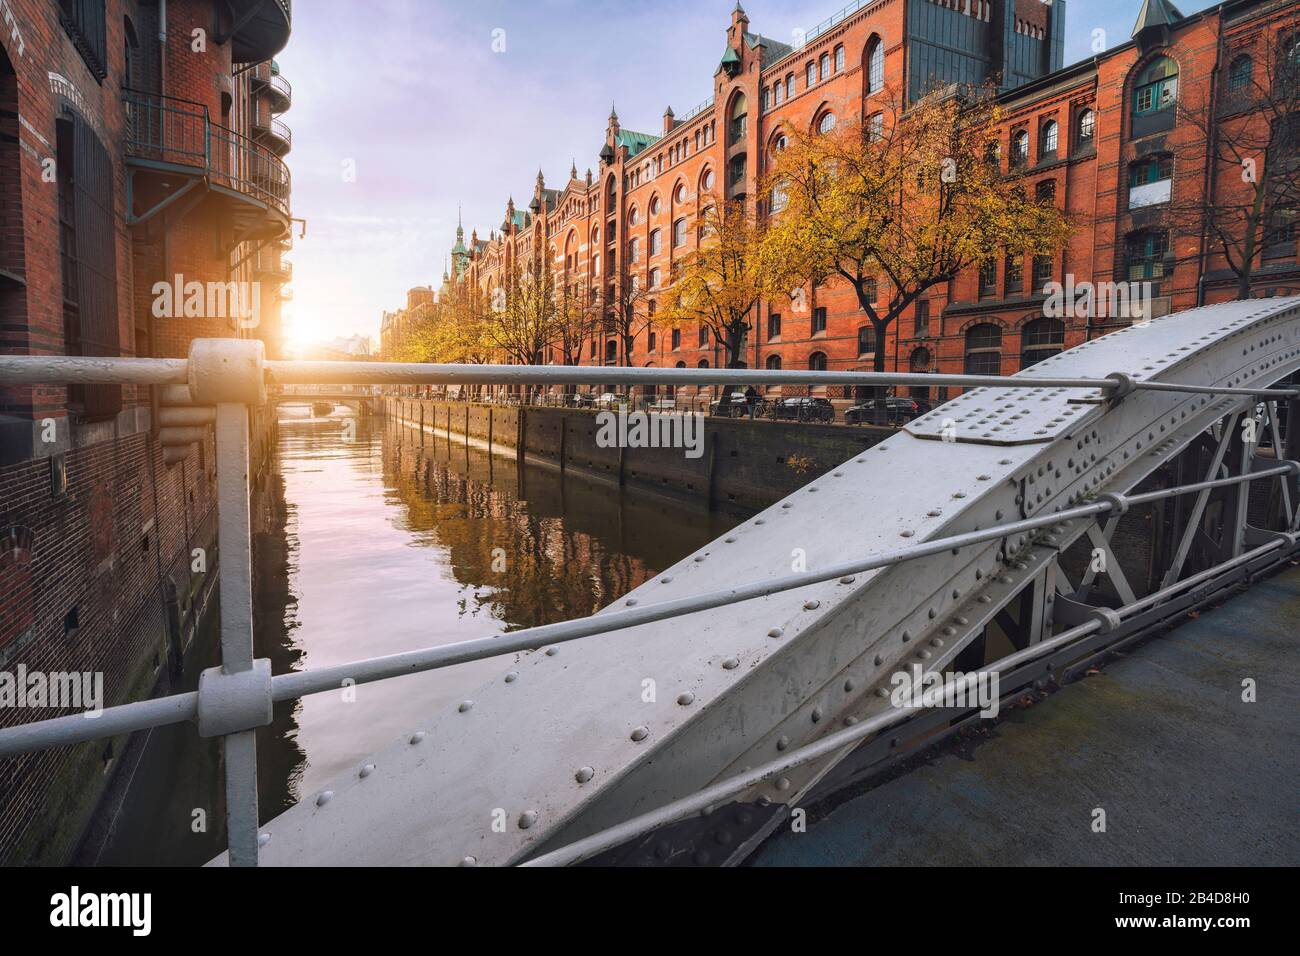 Arch bridge over canals in the historic warehouse district of Hamburg in the warm light of sunset, Germany, Europe Stock Photo